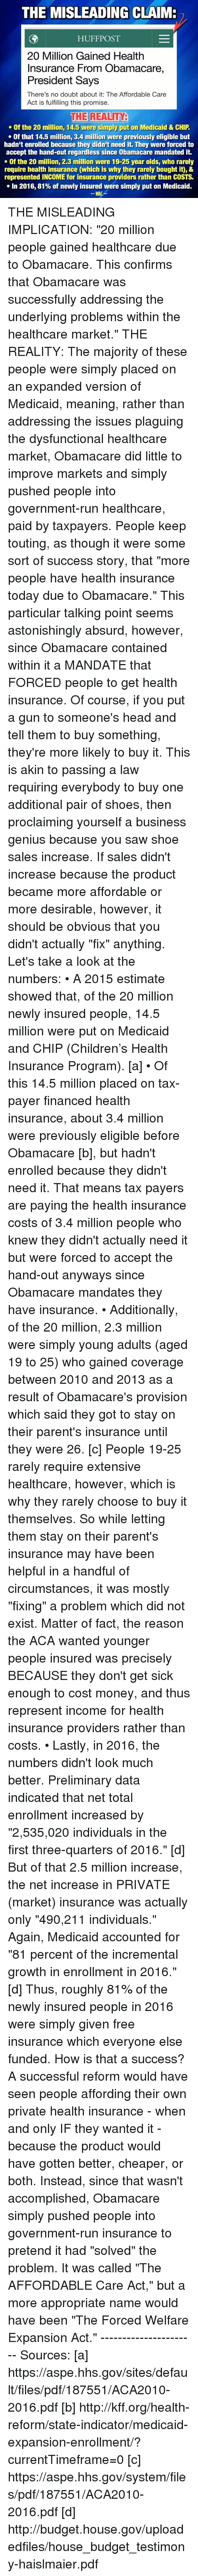 """Akinators: THE MISLEADING CLAIMR  HUFF POST  20 Million Gained Health  Insurance From Obamacare,  President Says  There's no doubt about it: The Affordable Care  Act is fulfilling this promise.  THE REALITY  Of the 20 million, 14.5 were simply put on Medicaid & CHIP  Of that 14.5 million, 3.4 million were previously eligible but  hadn't enrolled because they didn't need it. They were forced to  accept the hand-out regardless since Obamacare mandated it.  Of the 20 million, 2.3 million were 19-25 year olds, who rarely  require health insurance (which is why they rarely bought it), &  represented INCOME for insurance providers rather than COSTS.  In 2016, 81% of newly insured were simply put on Medicaid.  WAC THE MISLEADING IMPLICATION: """"20 million people gained healthcare due to Obamacare. This confirms that Obamacare was successfully addressing the underlying problems within the healthcare market.""""  THE REALITY: The majority of these people were simply placed on an expanded version of Medicaid, meaning, rather than addressing the issues plaguing the dysfunctional healthcare market, Obamacare did little to improve markets and simply pushed people into government-run healthcare, paid by taxpayers.  People keep touting, as though it were some sort of success story, that """"more people have health insurance today due to Obamacare."""" This particular talking point seems astonishingly absurd, however, since Obamacare contained within it a MANDATE that FORCED people to get health insurance. Of course, if you put a gun to someone's head and tell them to buy something, they're more likely to buy it. This is akin to passing a law requiring everybody to buy one additional pair of shoes, then proclaiming yourself a business genius because you saw shoe sales increase. If sales didn't increase because the product became more affordable or more desirable, however, it should be obvious that you didn't actually """"fix"""" anything.   Let's take a look at the numbers:  • A 2015 estimate showe"""